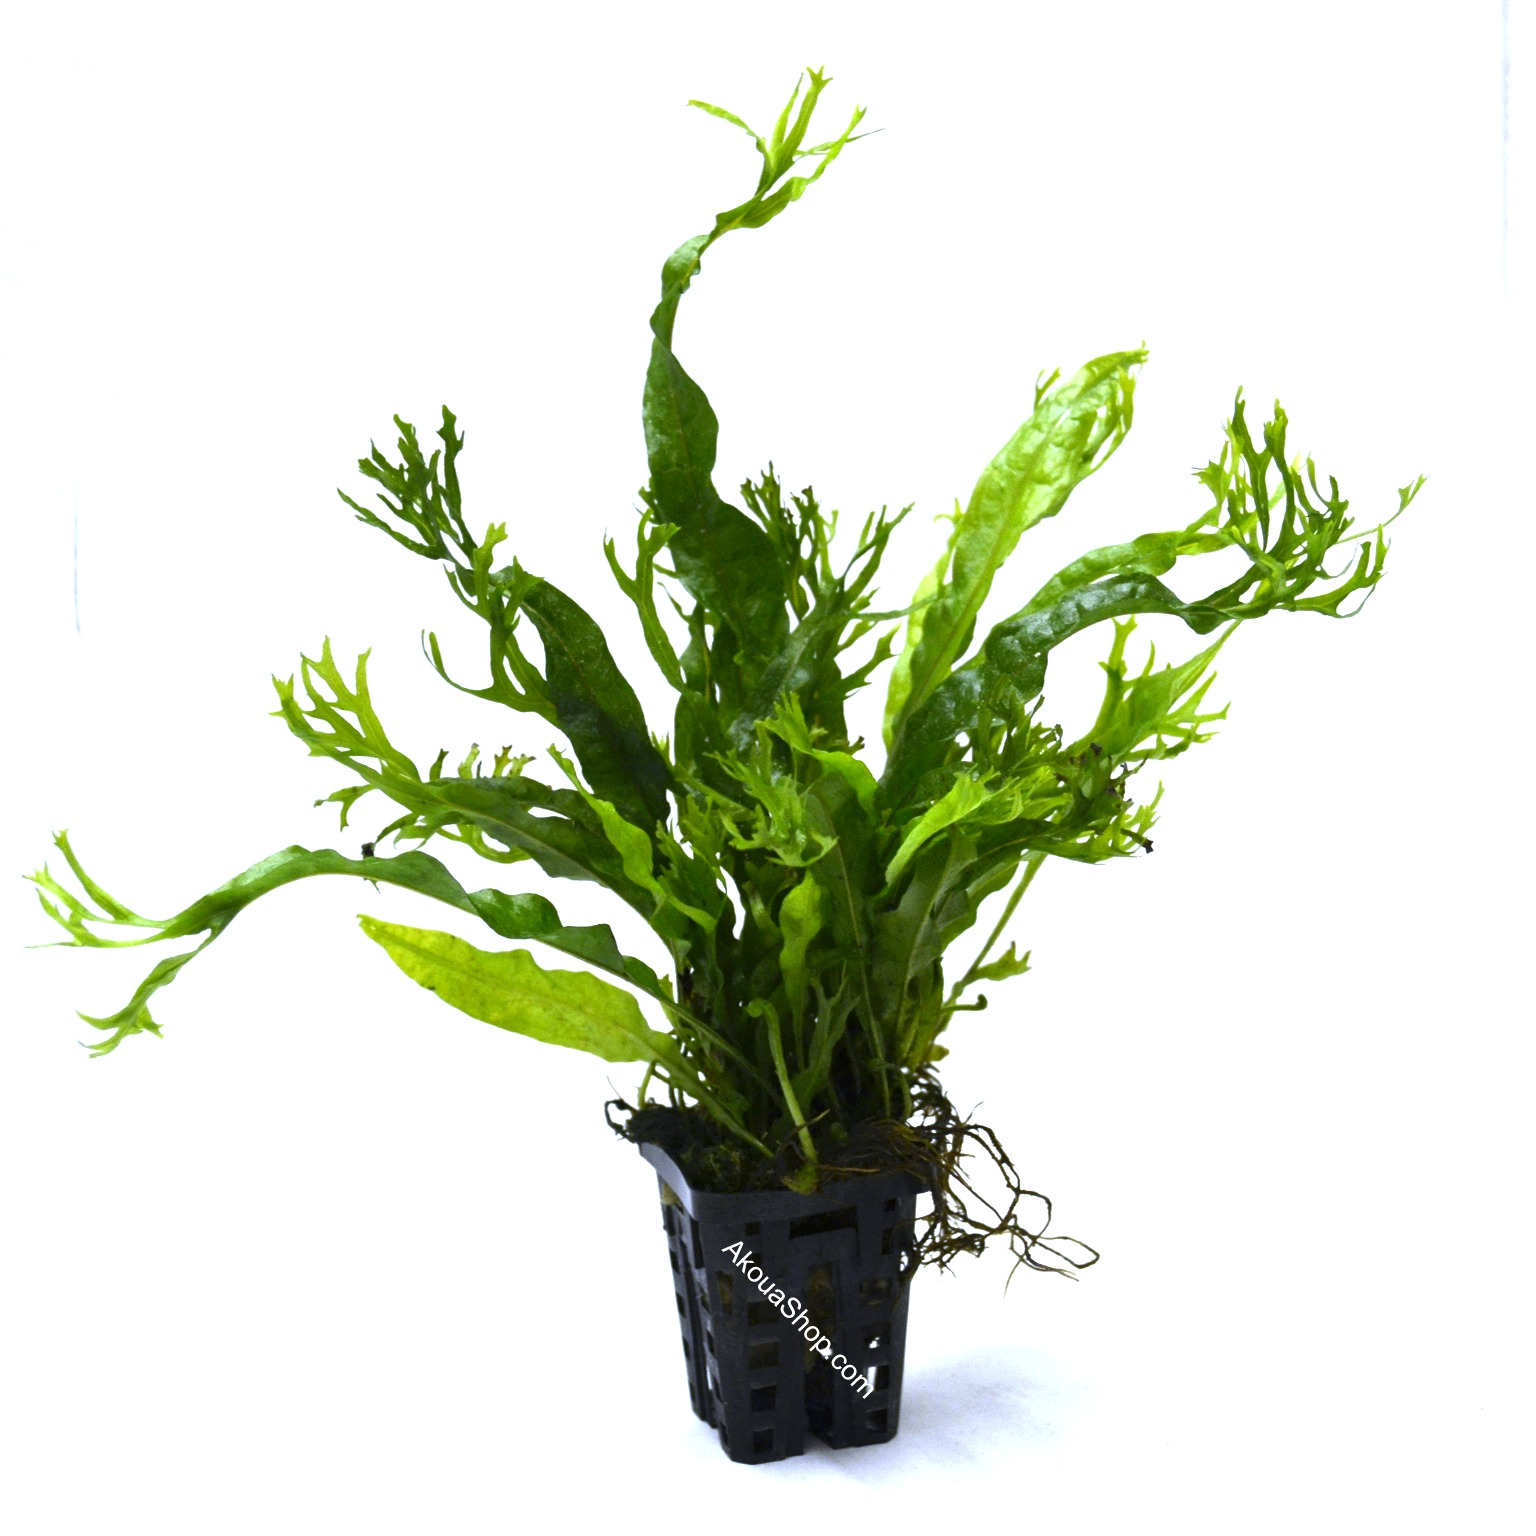 microsorum pteropus var windelov var windelov plante d 39 aquarium en pot de diam tre 5 cm. Black Bedroom Furniture Sets. Home Design Ideas